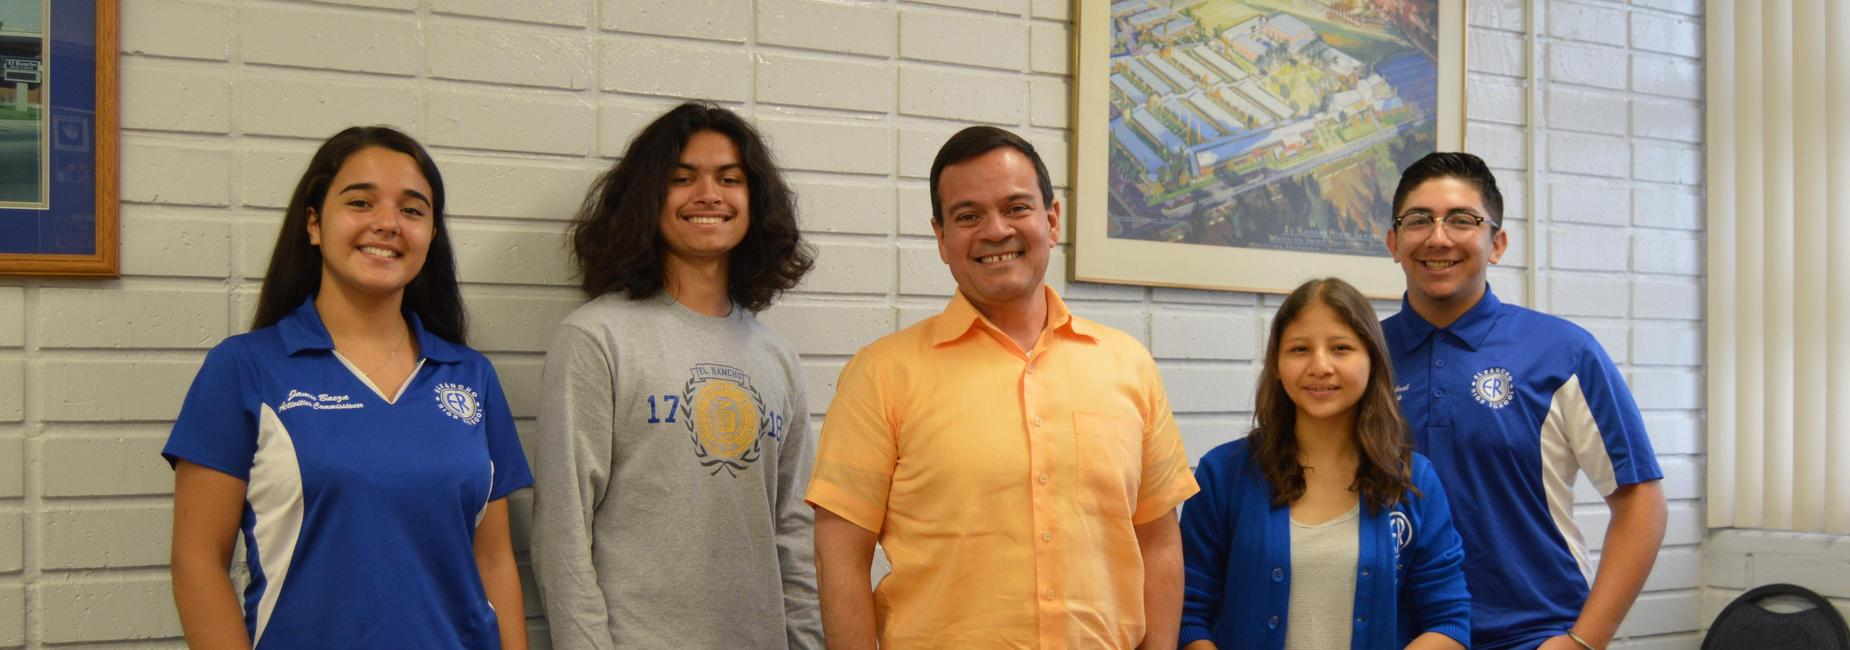 ERHS Students with Superintendent